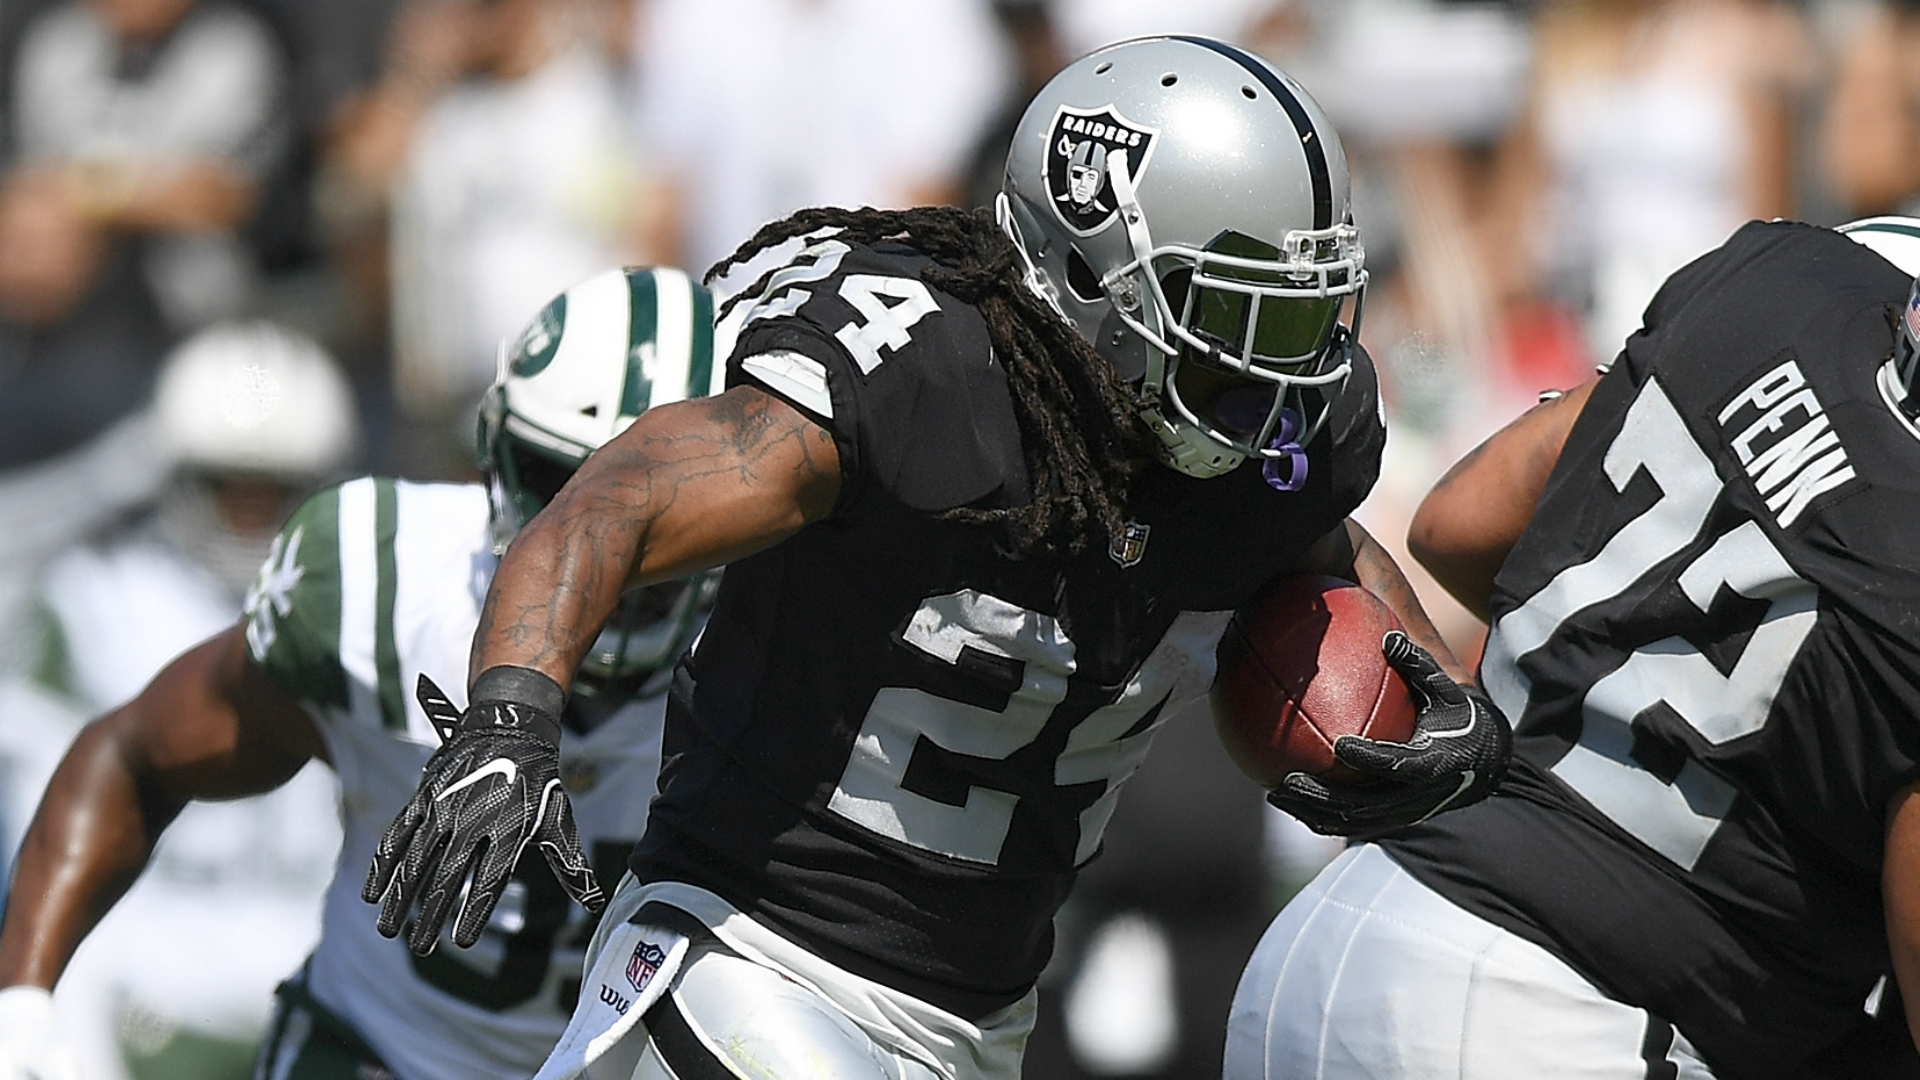 Marshawn Lynch scores first touchdown for Raiders